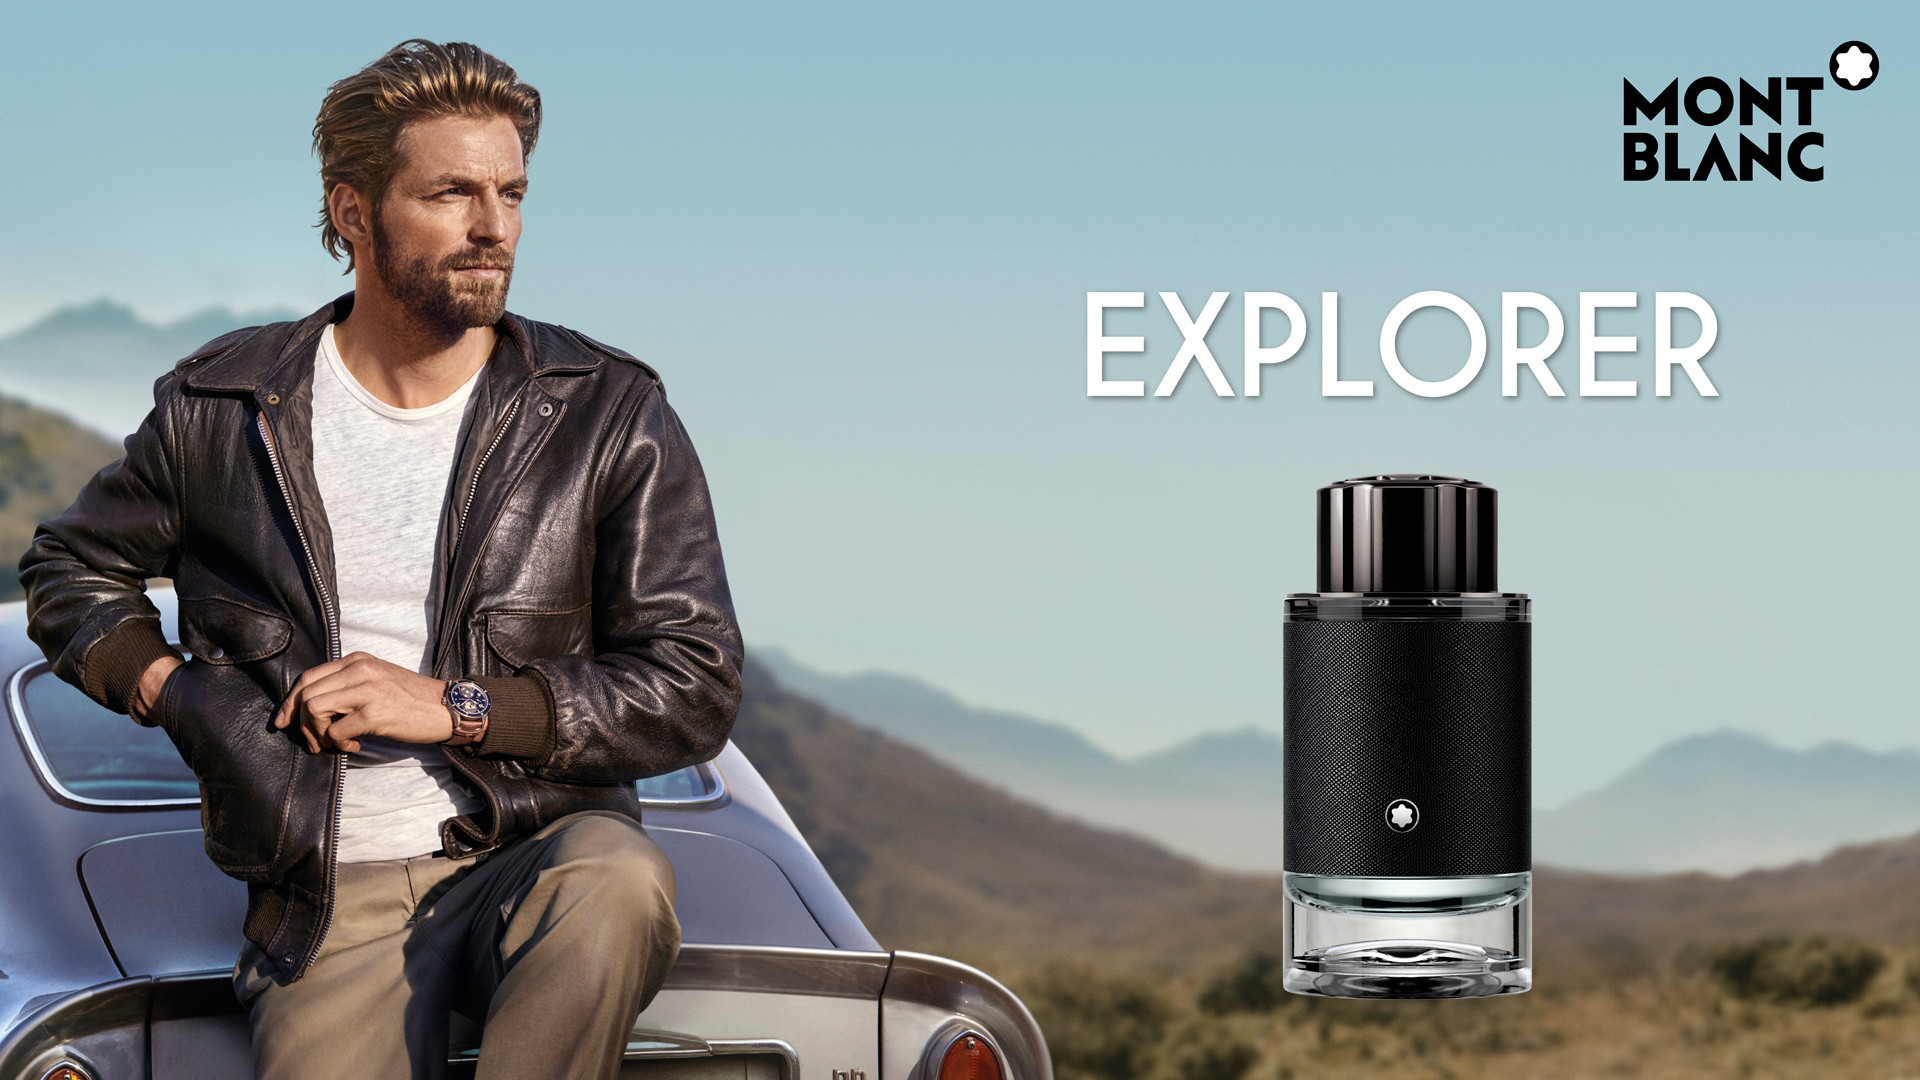 MONTBLANC_EXPLORER MODEL_DIGITAL Static_No Tagline_1920x1080.JPEG